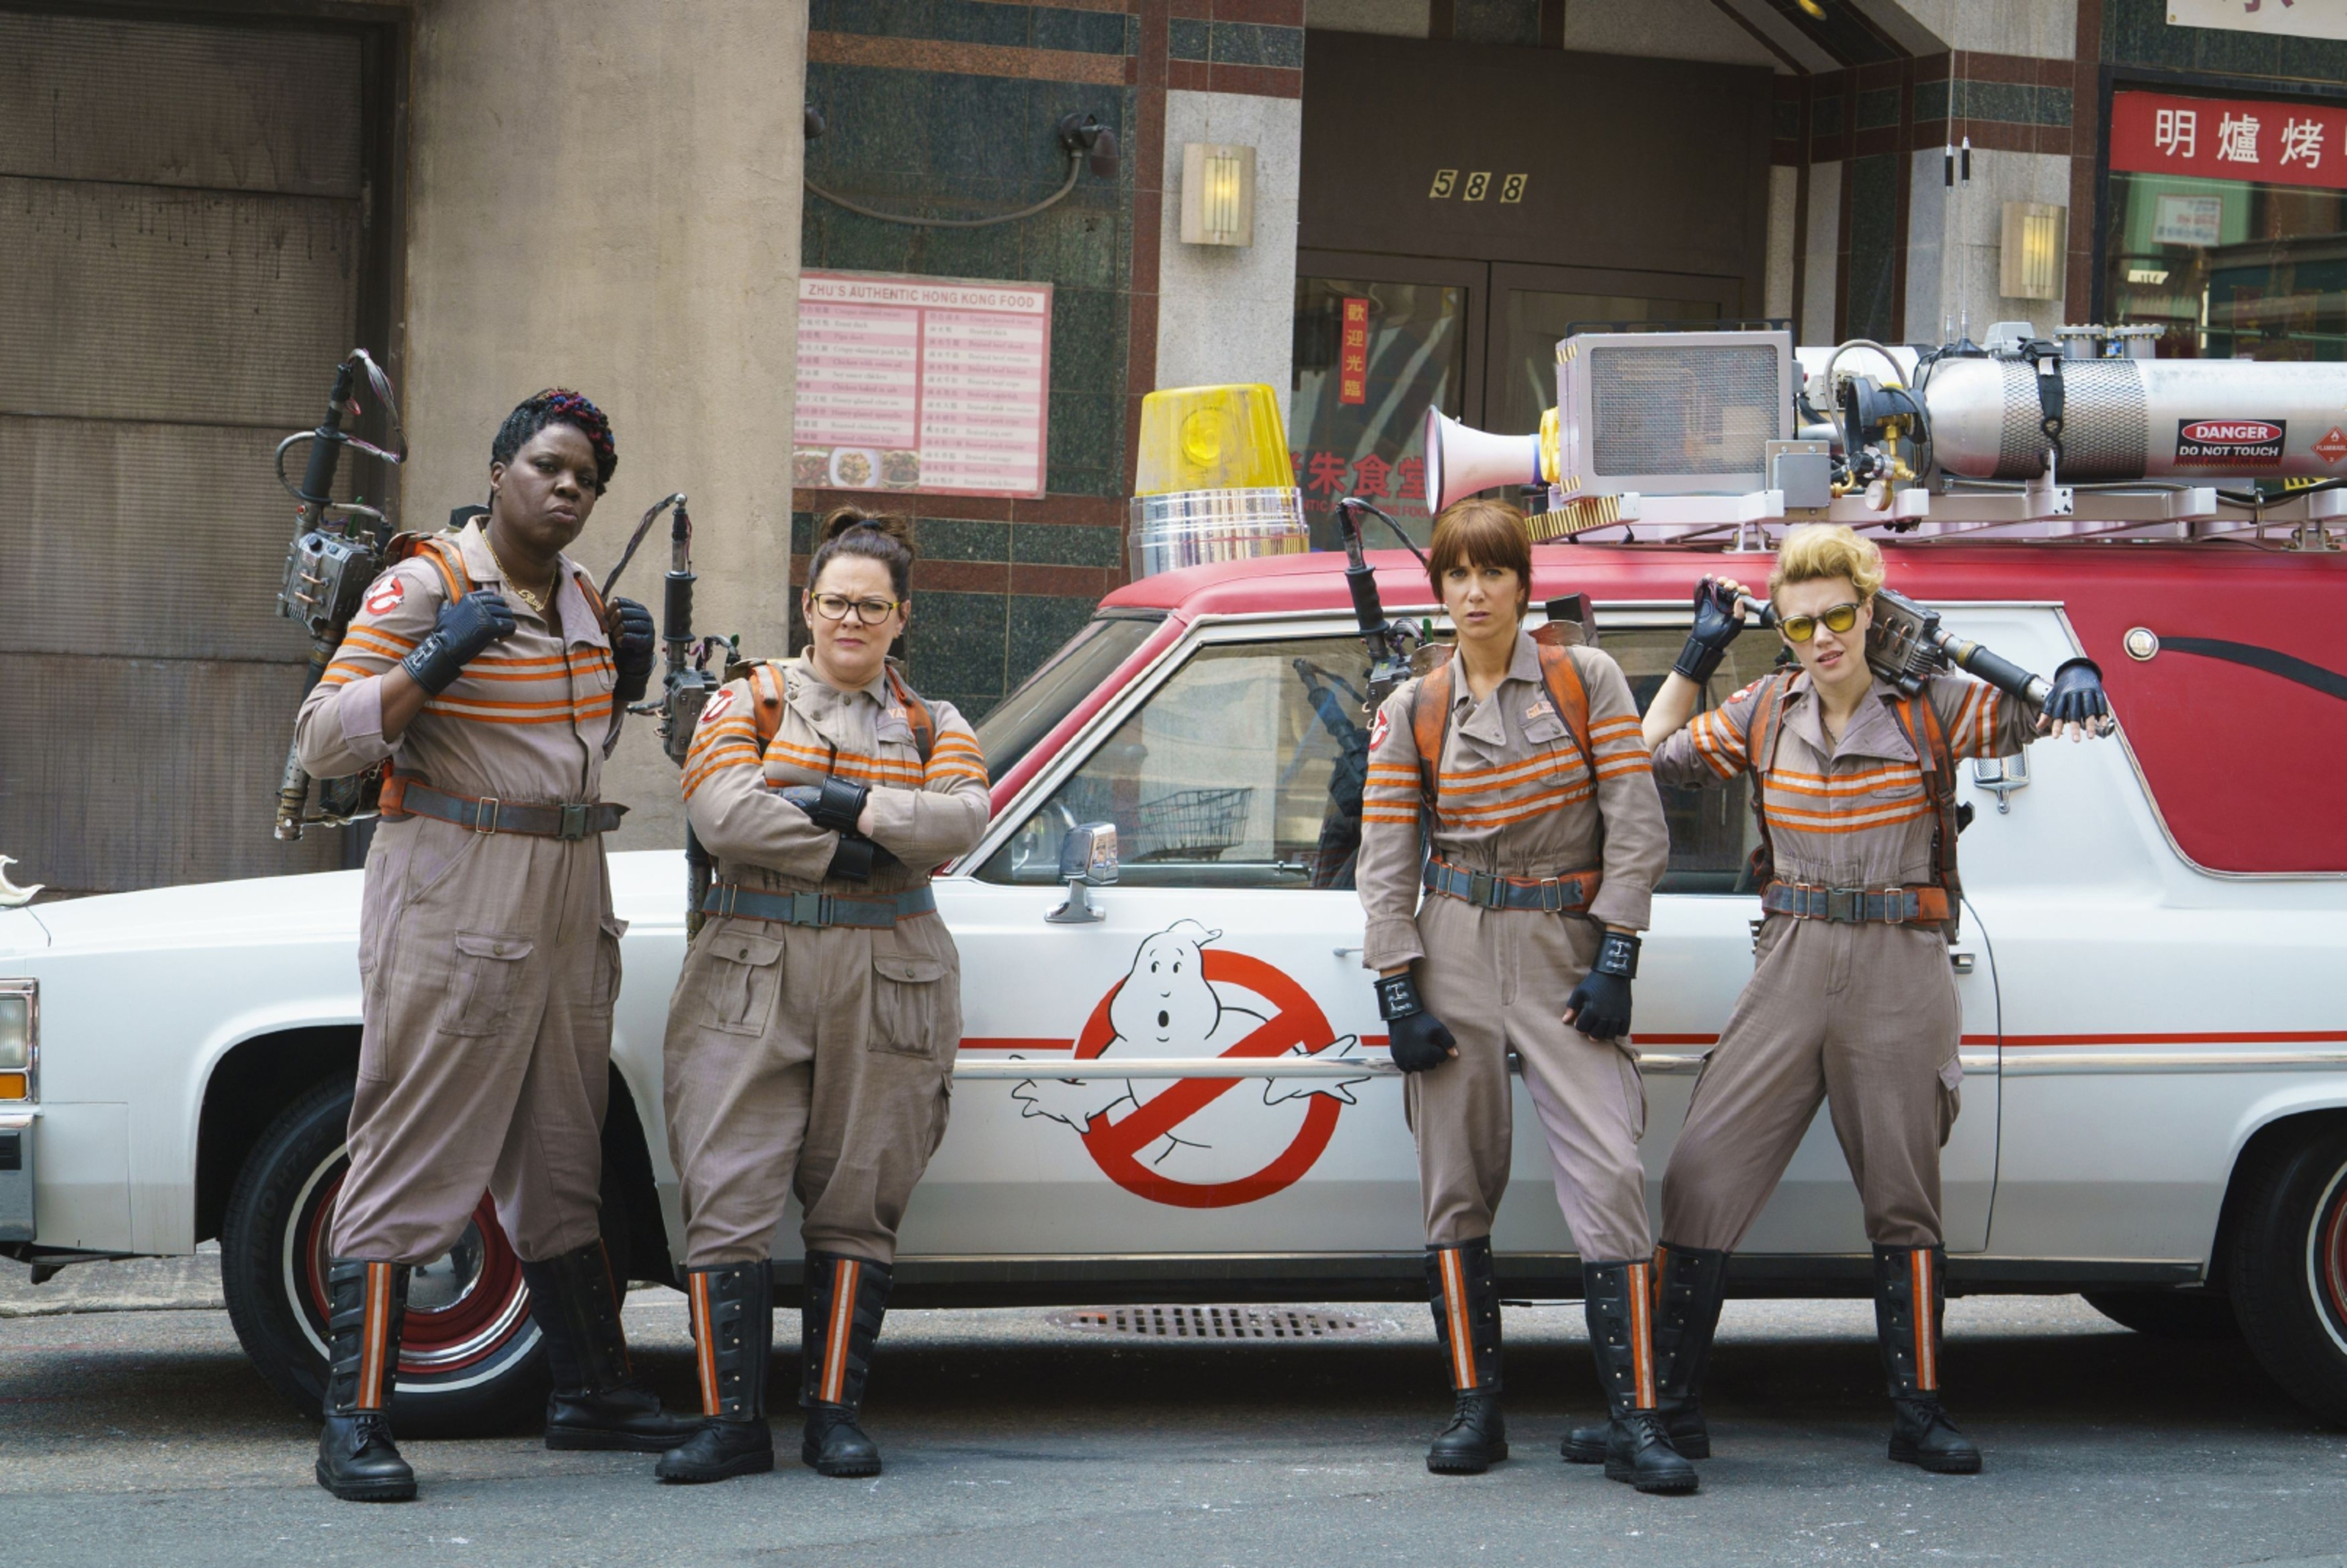 Coming to Fife? The Ghostbusters may be required in the Kingdom.